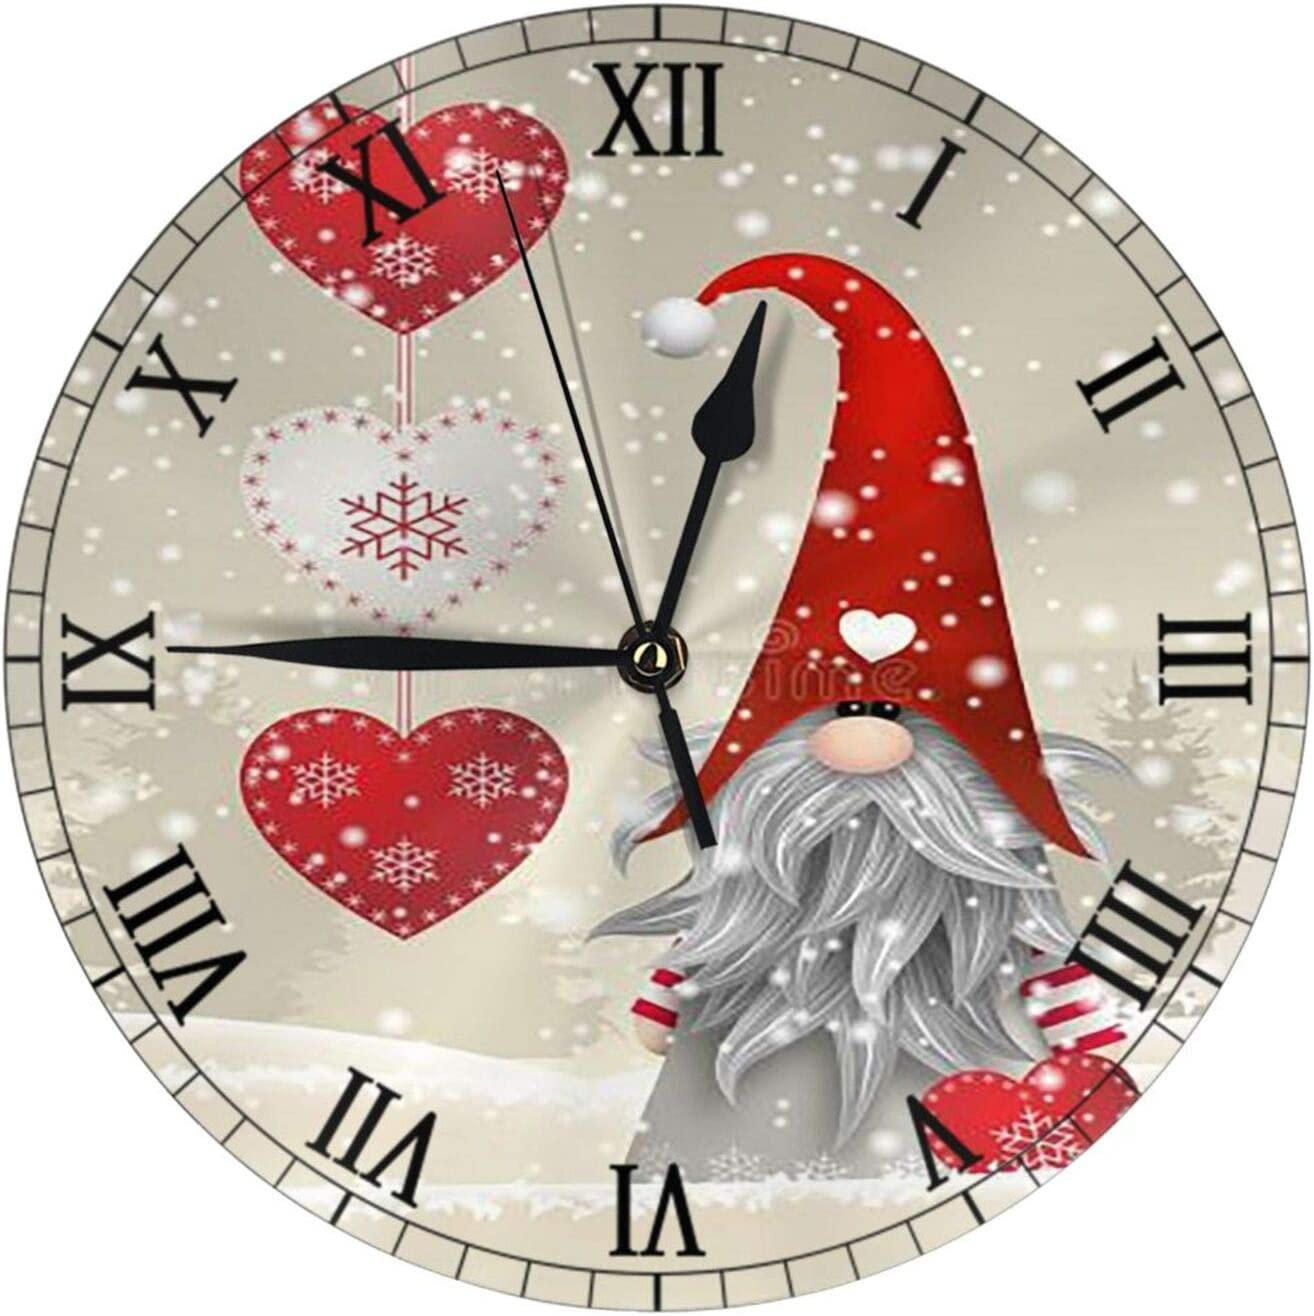 AuHomea Christmas Gnome Tomte Love Heart Round Wall Clock, Silent Non Ticking 9.5 Inch Clock Art Home Decor Battery Operated for Living Room, Kitchen, Bedroom